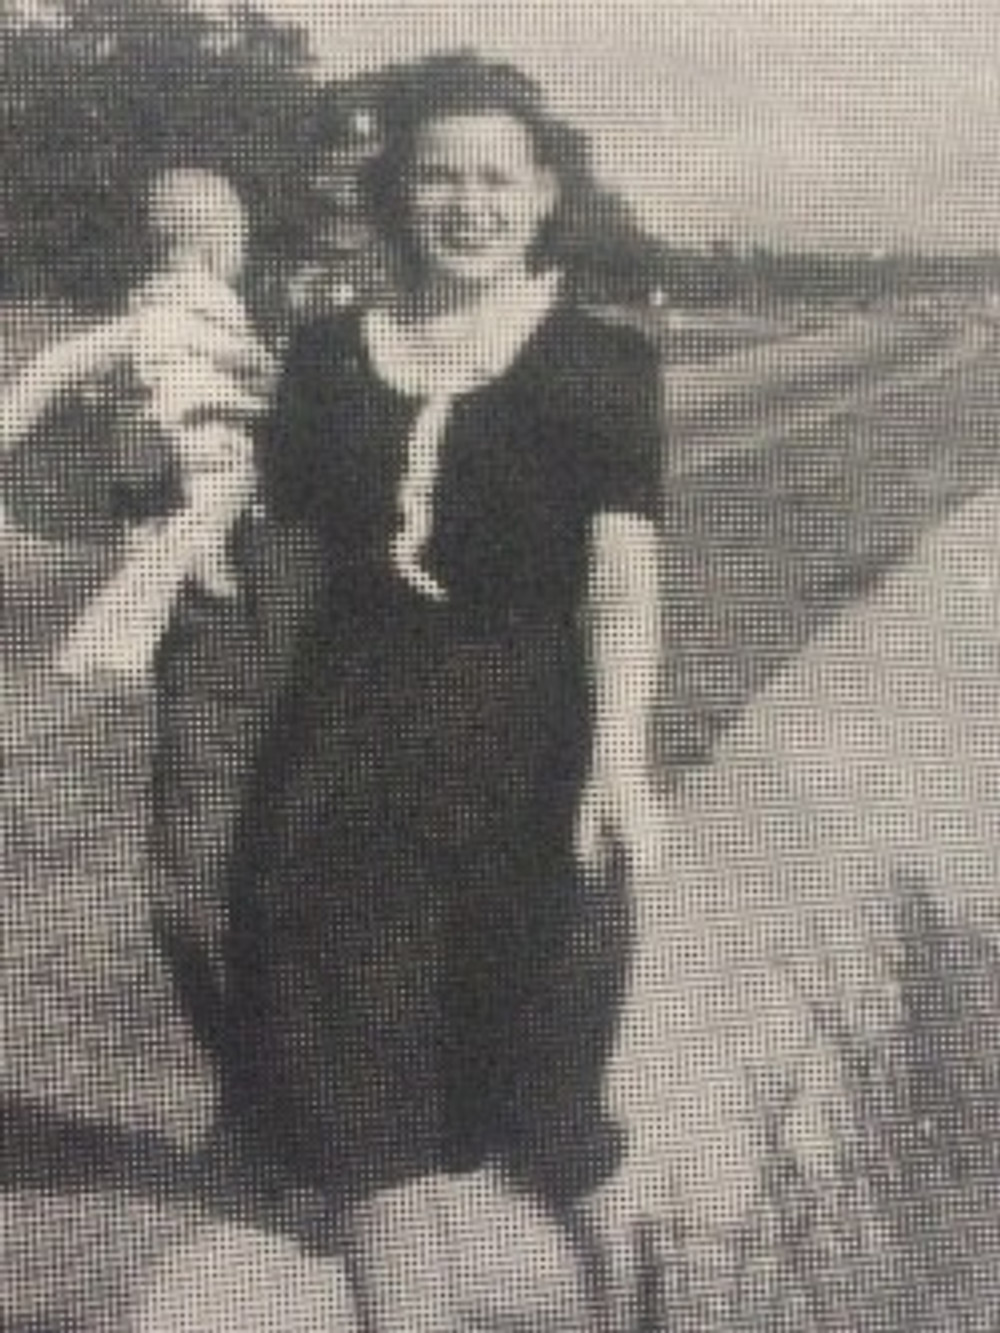 Beulah holding her son Marvin, 1945.